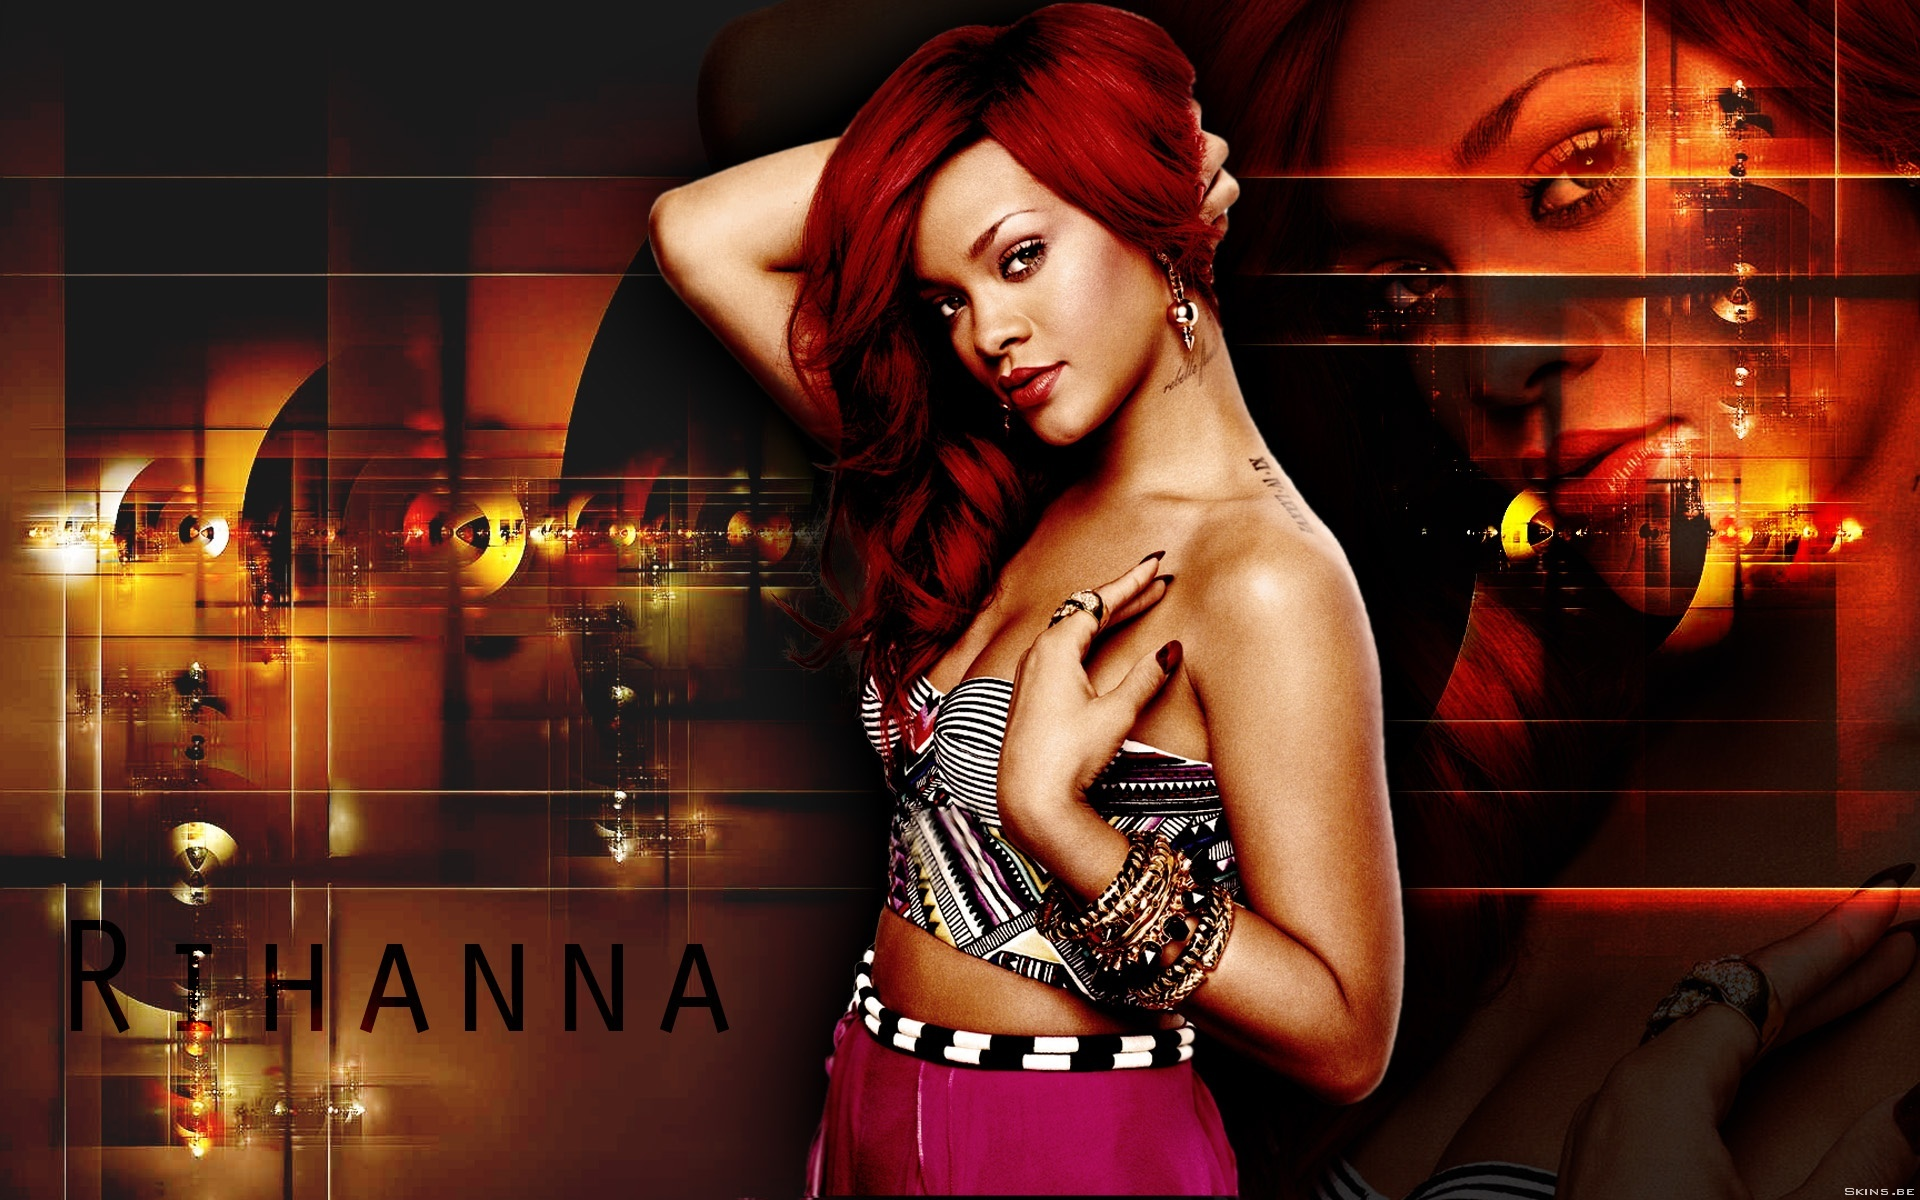 rihanna wallpapers hd A7